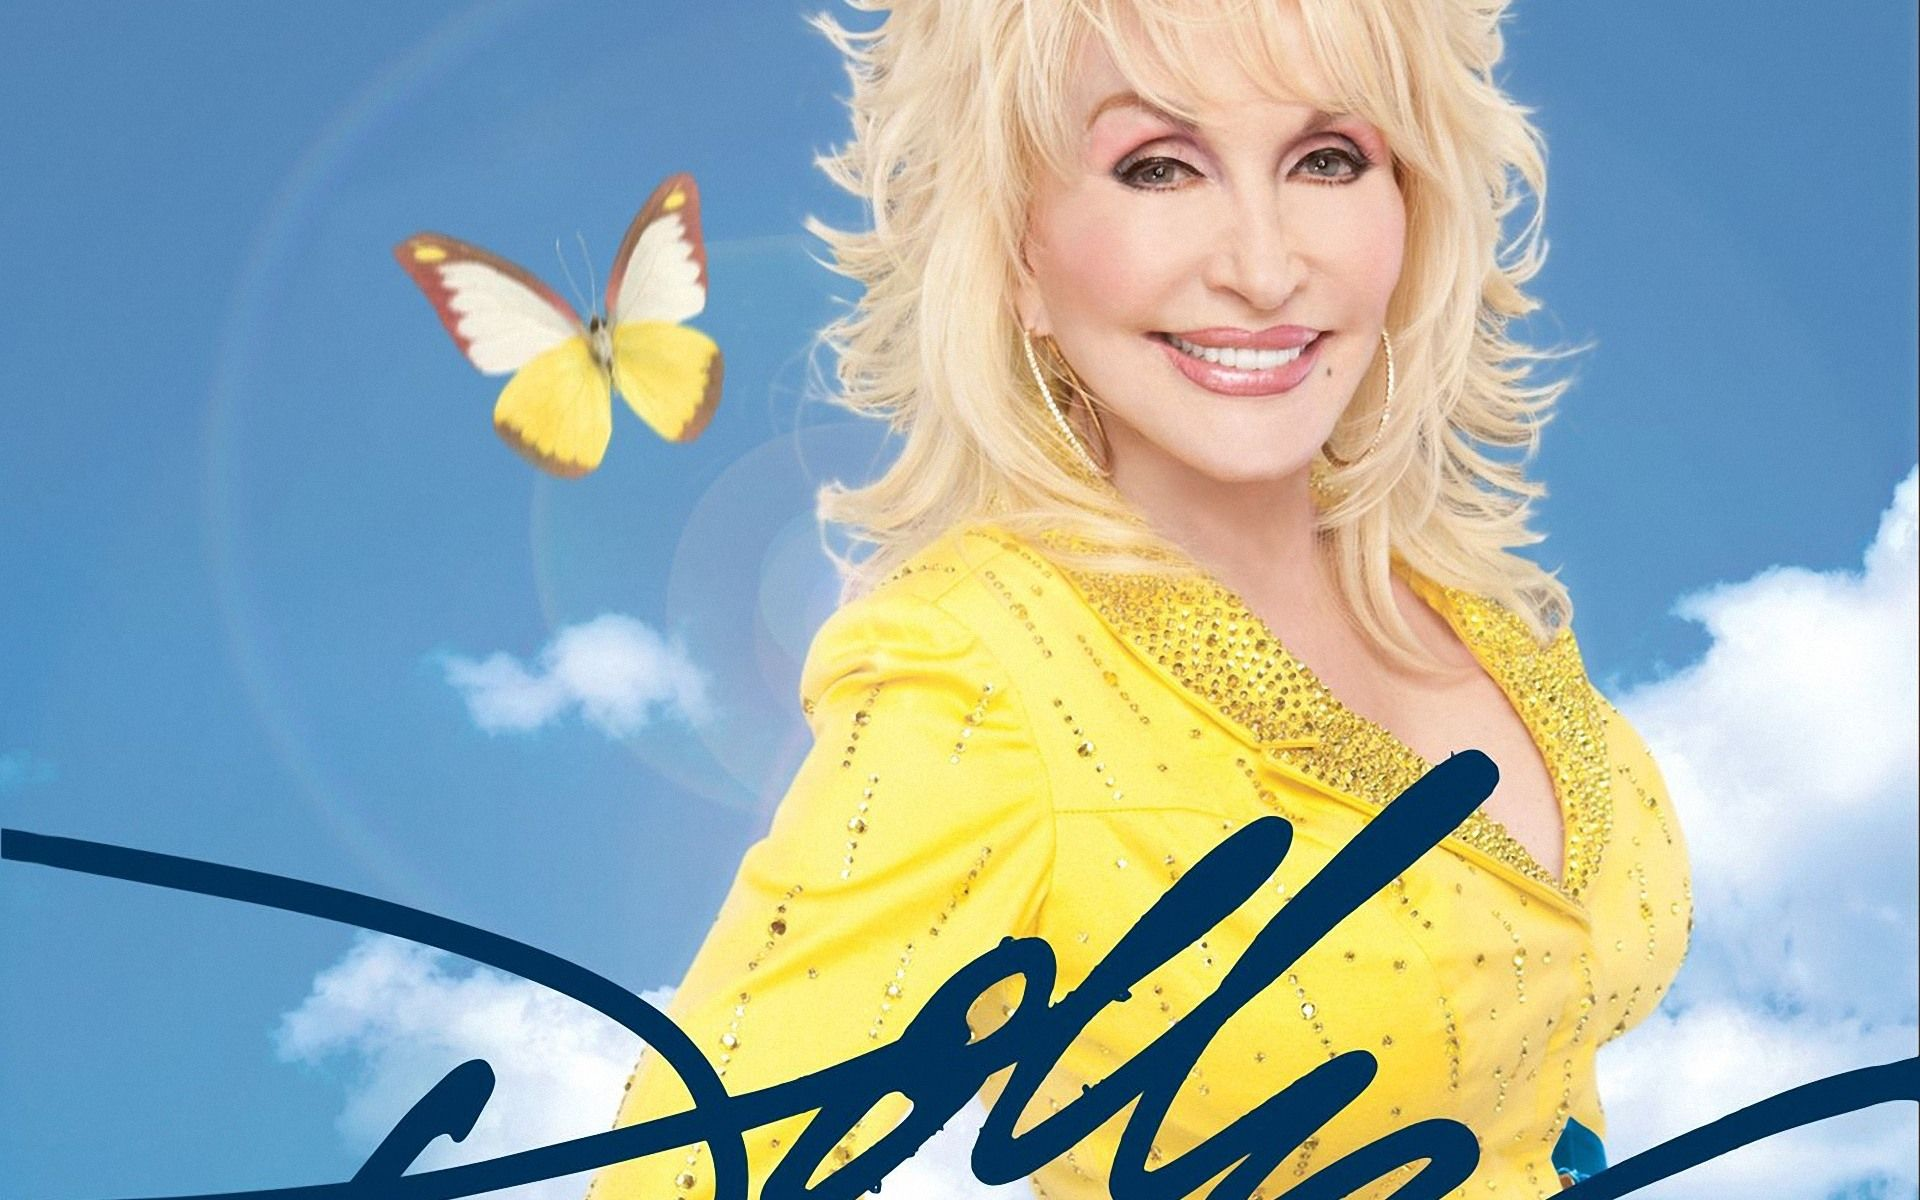 Download Dolly Parton Wallpaper Gallery